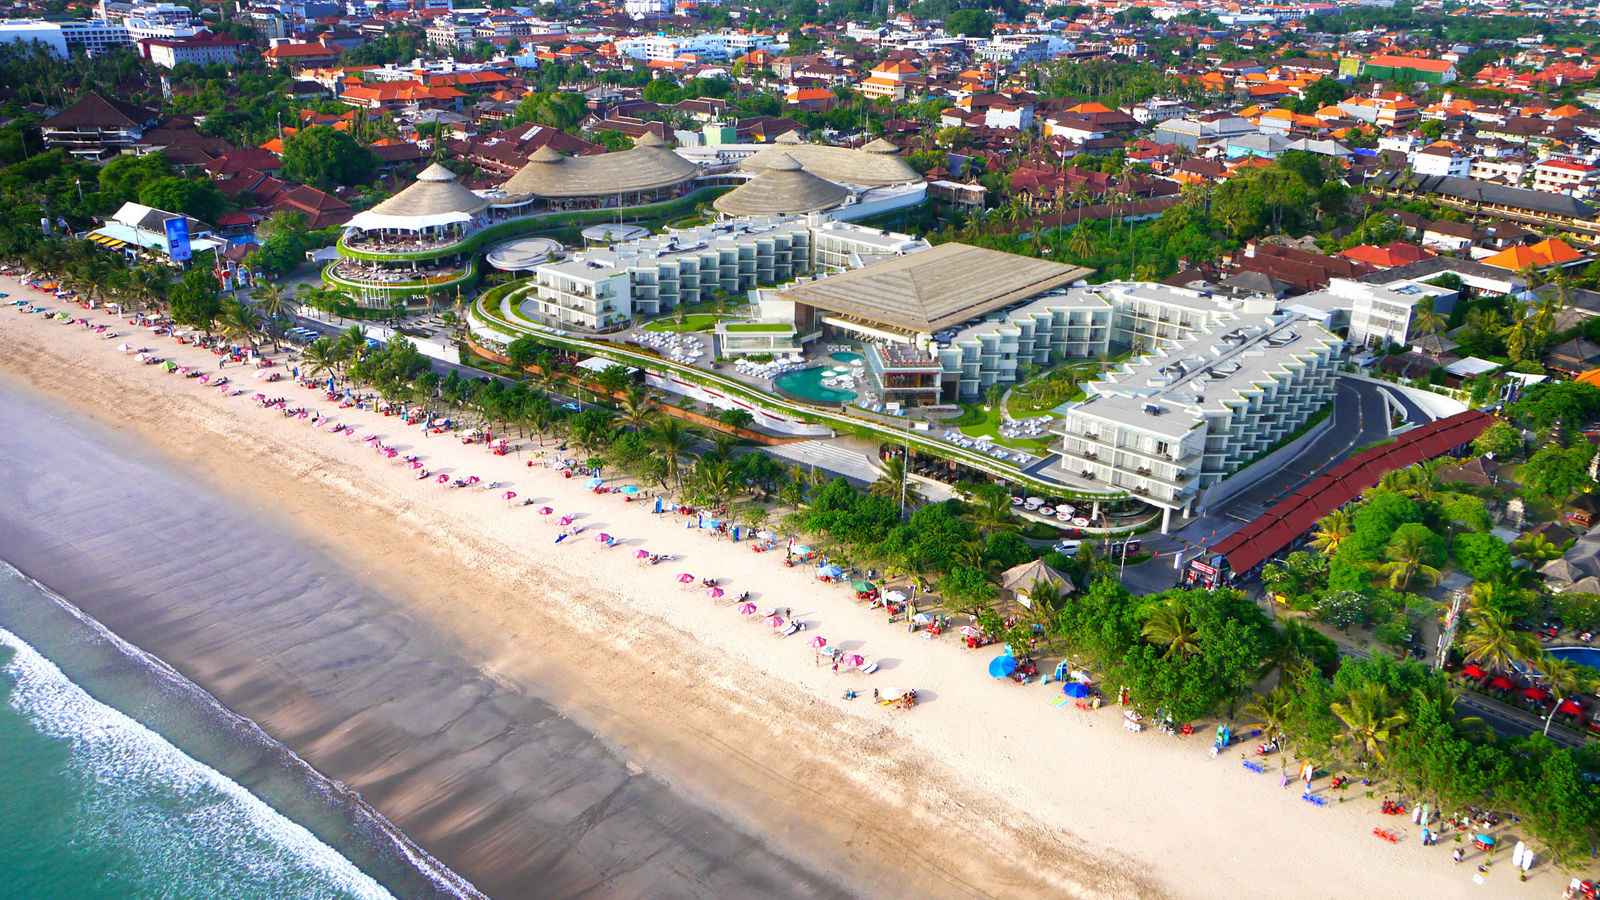 Aerial View at Sheraton Kuta Bali